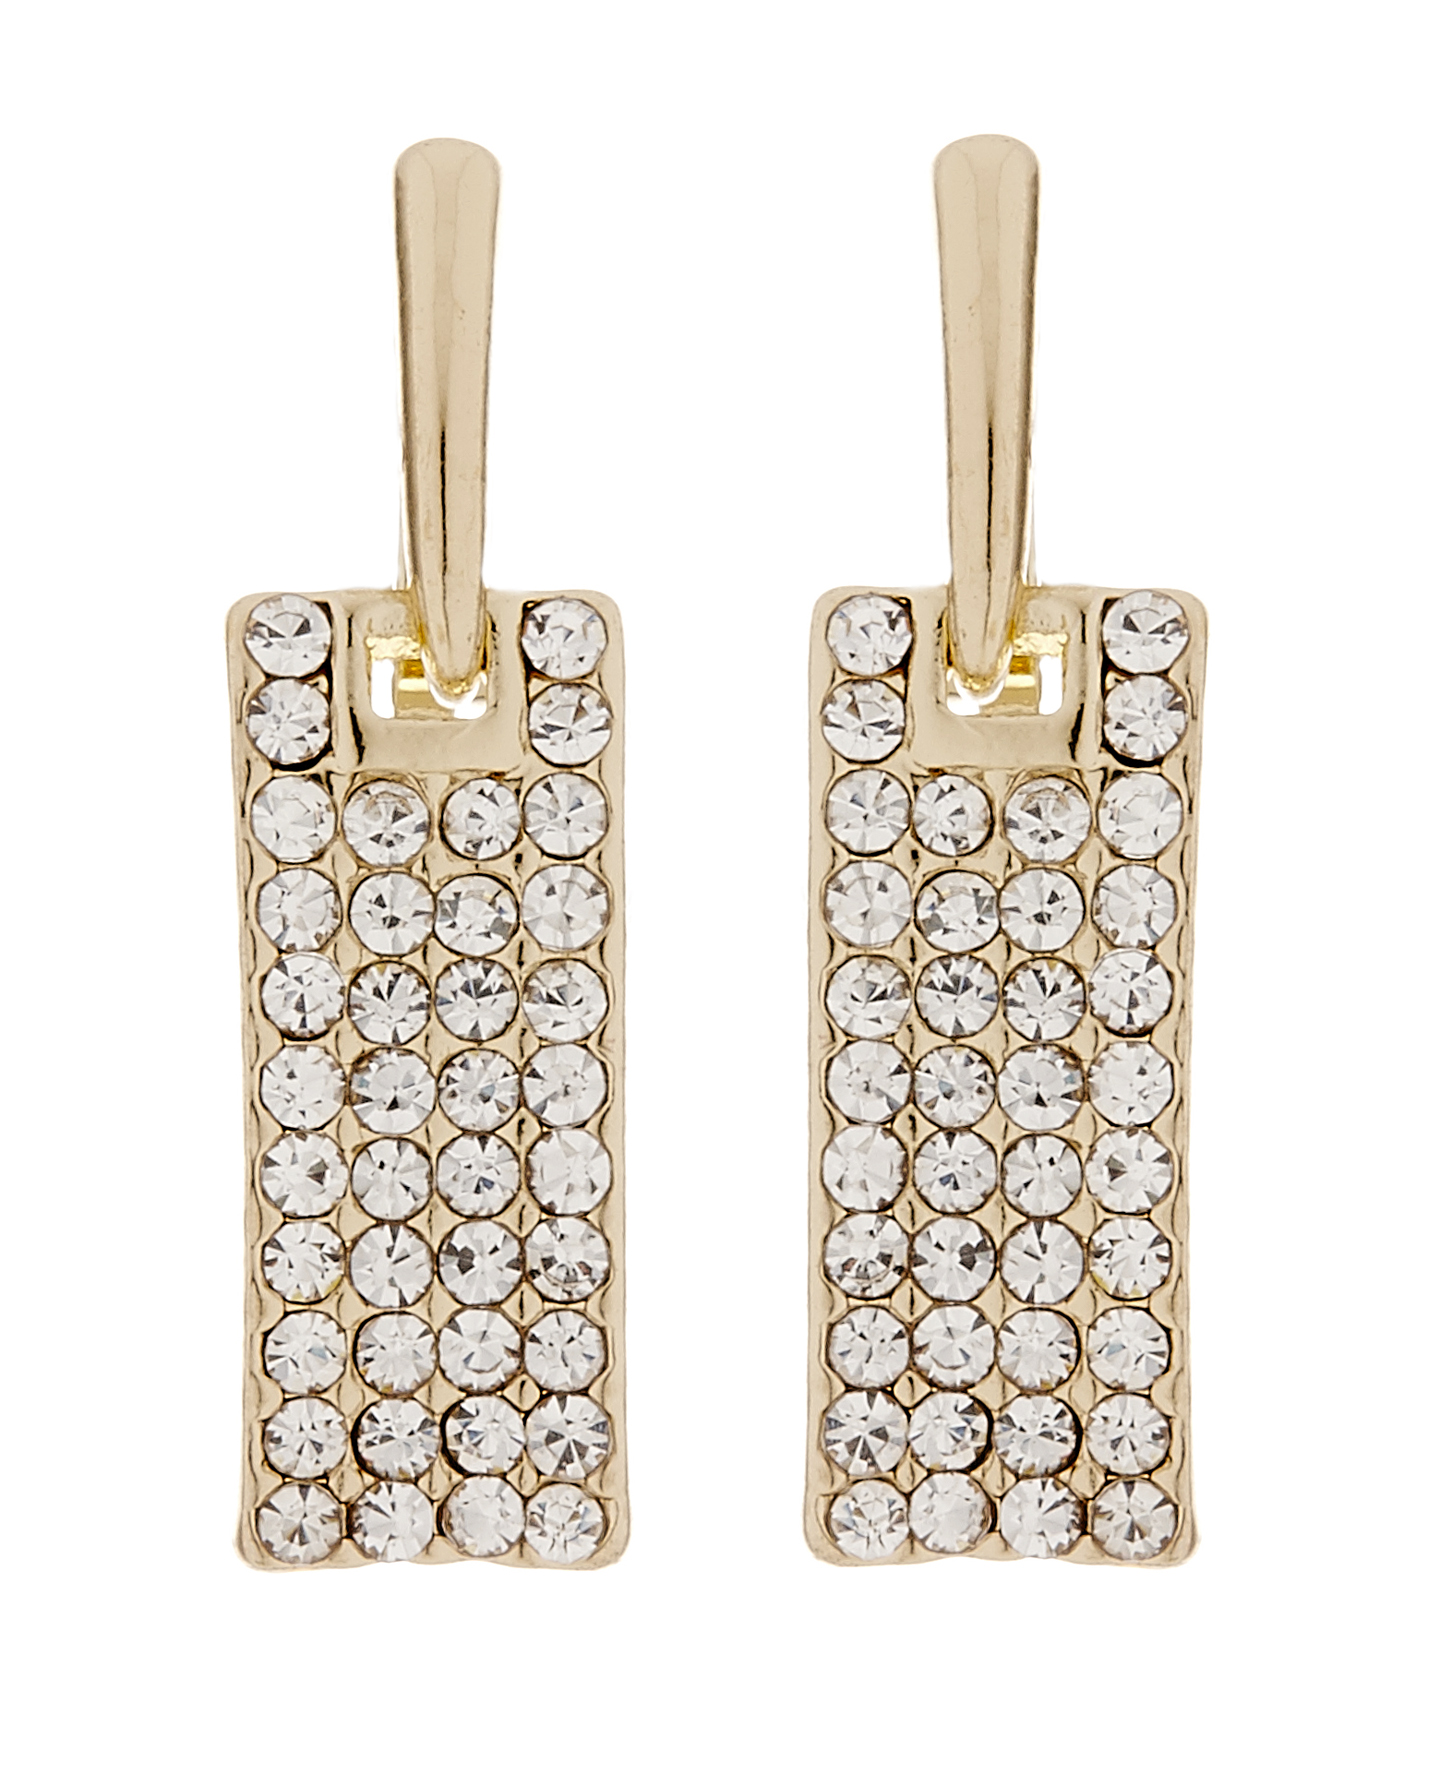 Clip On Earrings - Adele G - gold drop earring with clear crystals